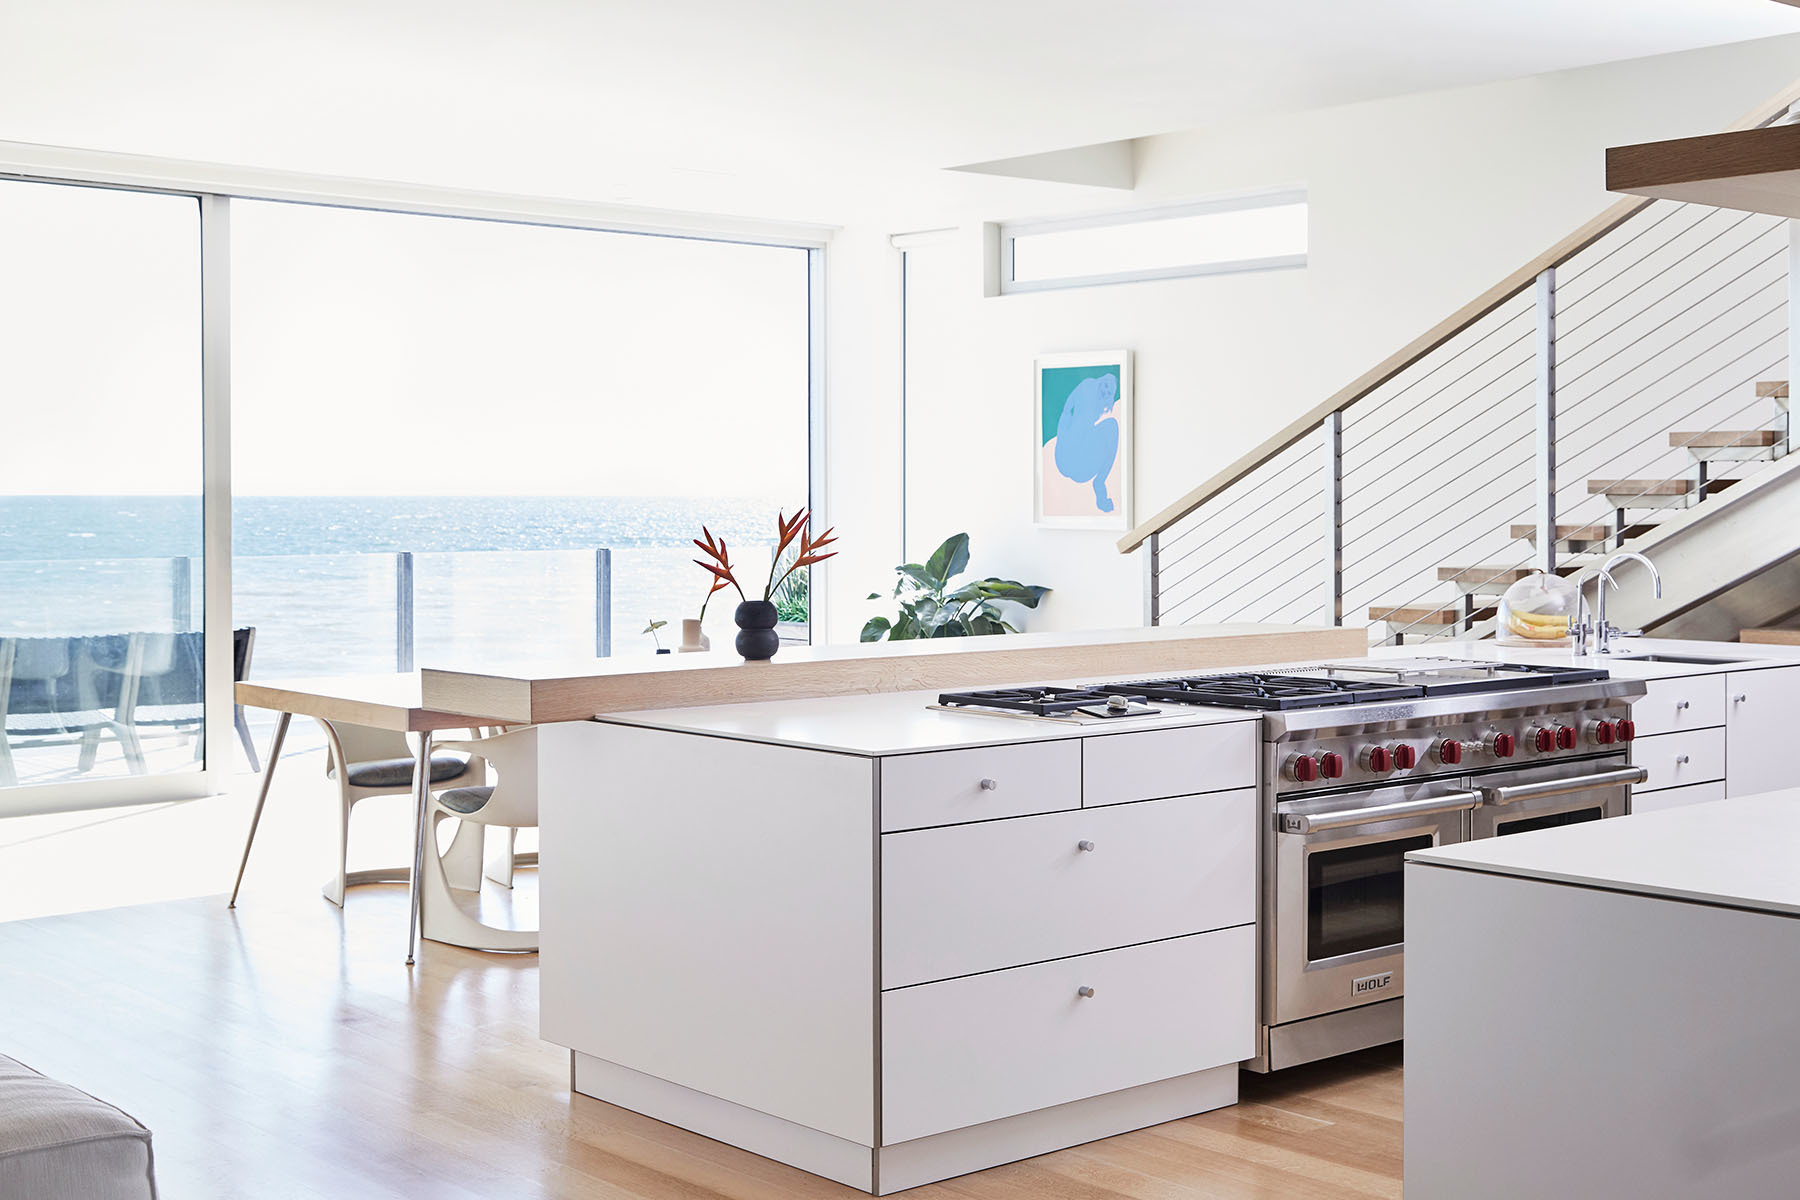 The beachfront home of Lunya founder, Ashley Merrill, exudes minimalism. Unvarnished Custom Dining Table | Ostergaard Vintage Dining Chairs | Piero Passacantando Artwork via Uprise Art | Wolf Appliances.